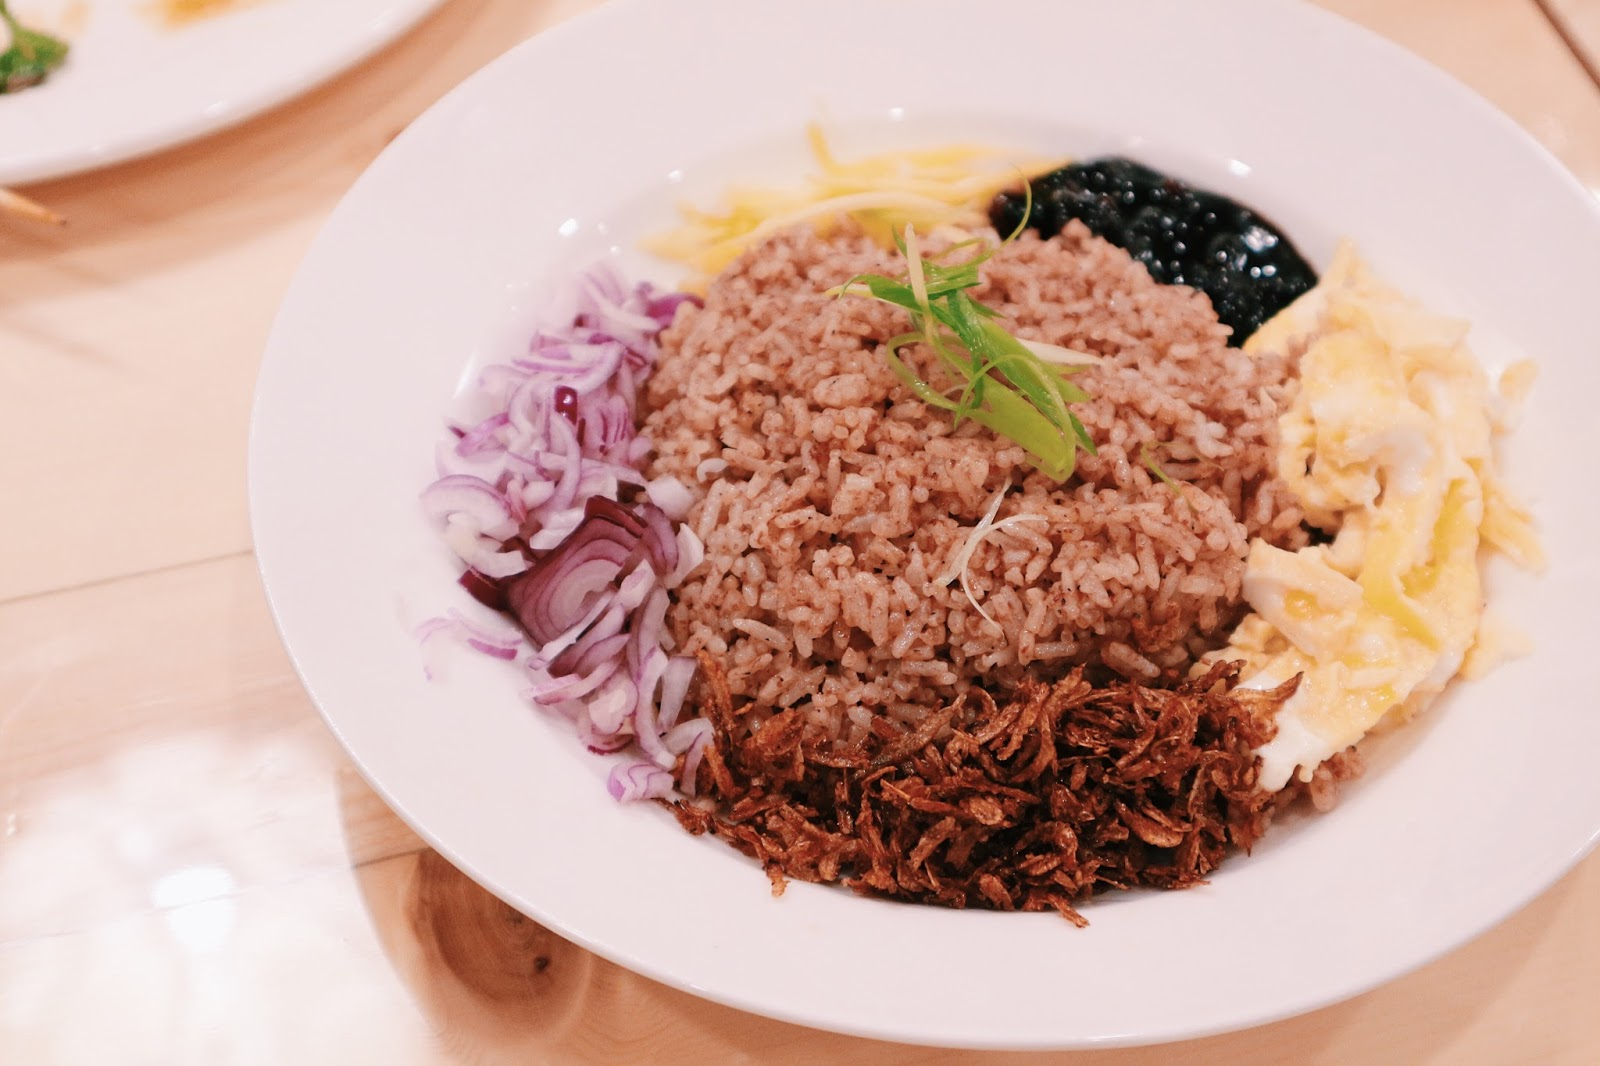 Flavors of Asia Davao - Bagoong Fried Rice